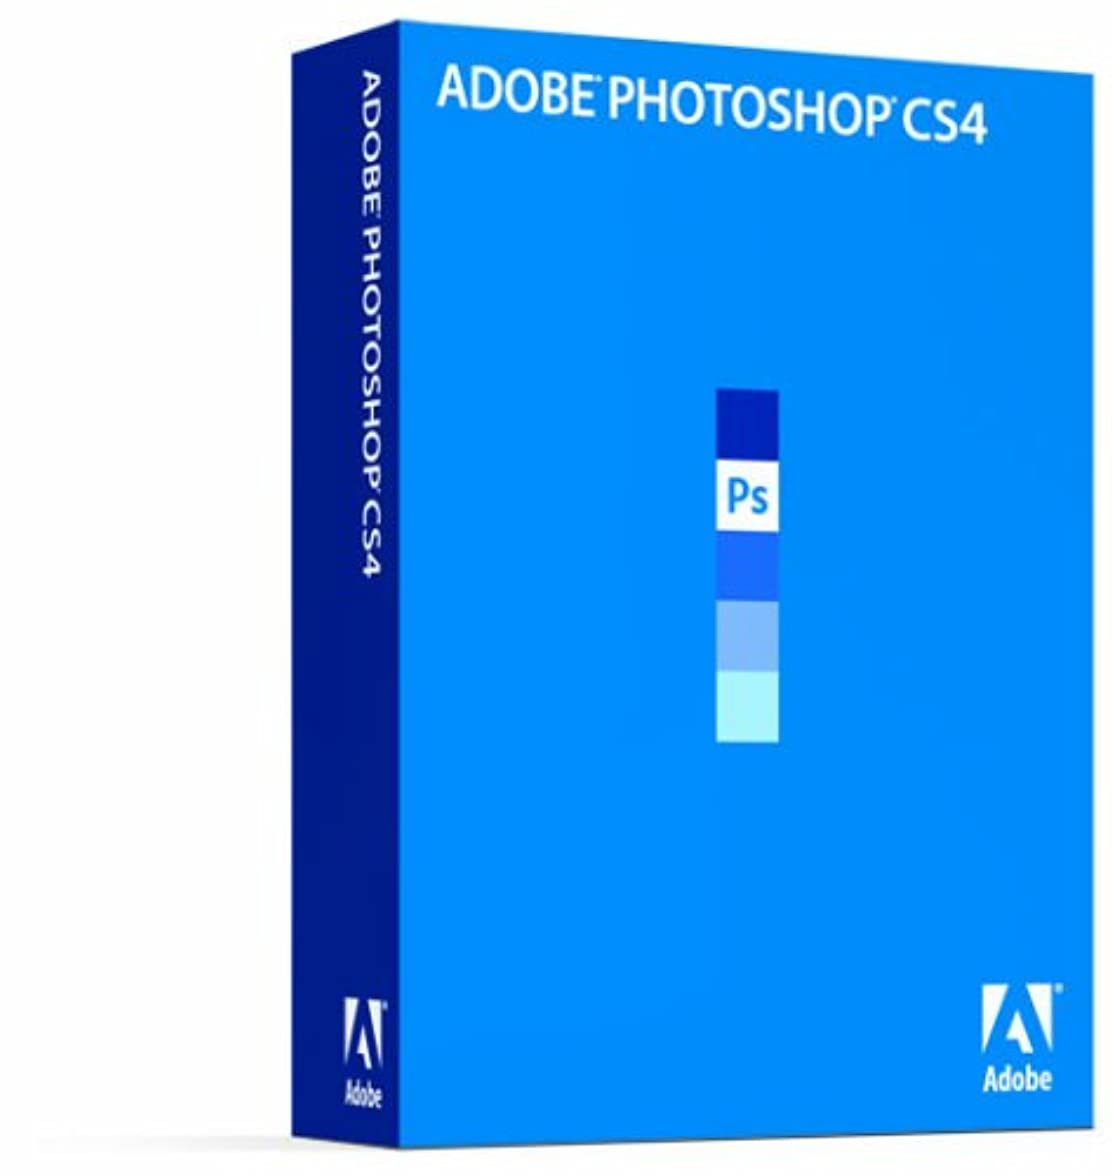 関税今Adobe Photoshop CS4 (V11.0) 日本語版 Macintosh版 (旧製品)